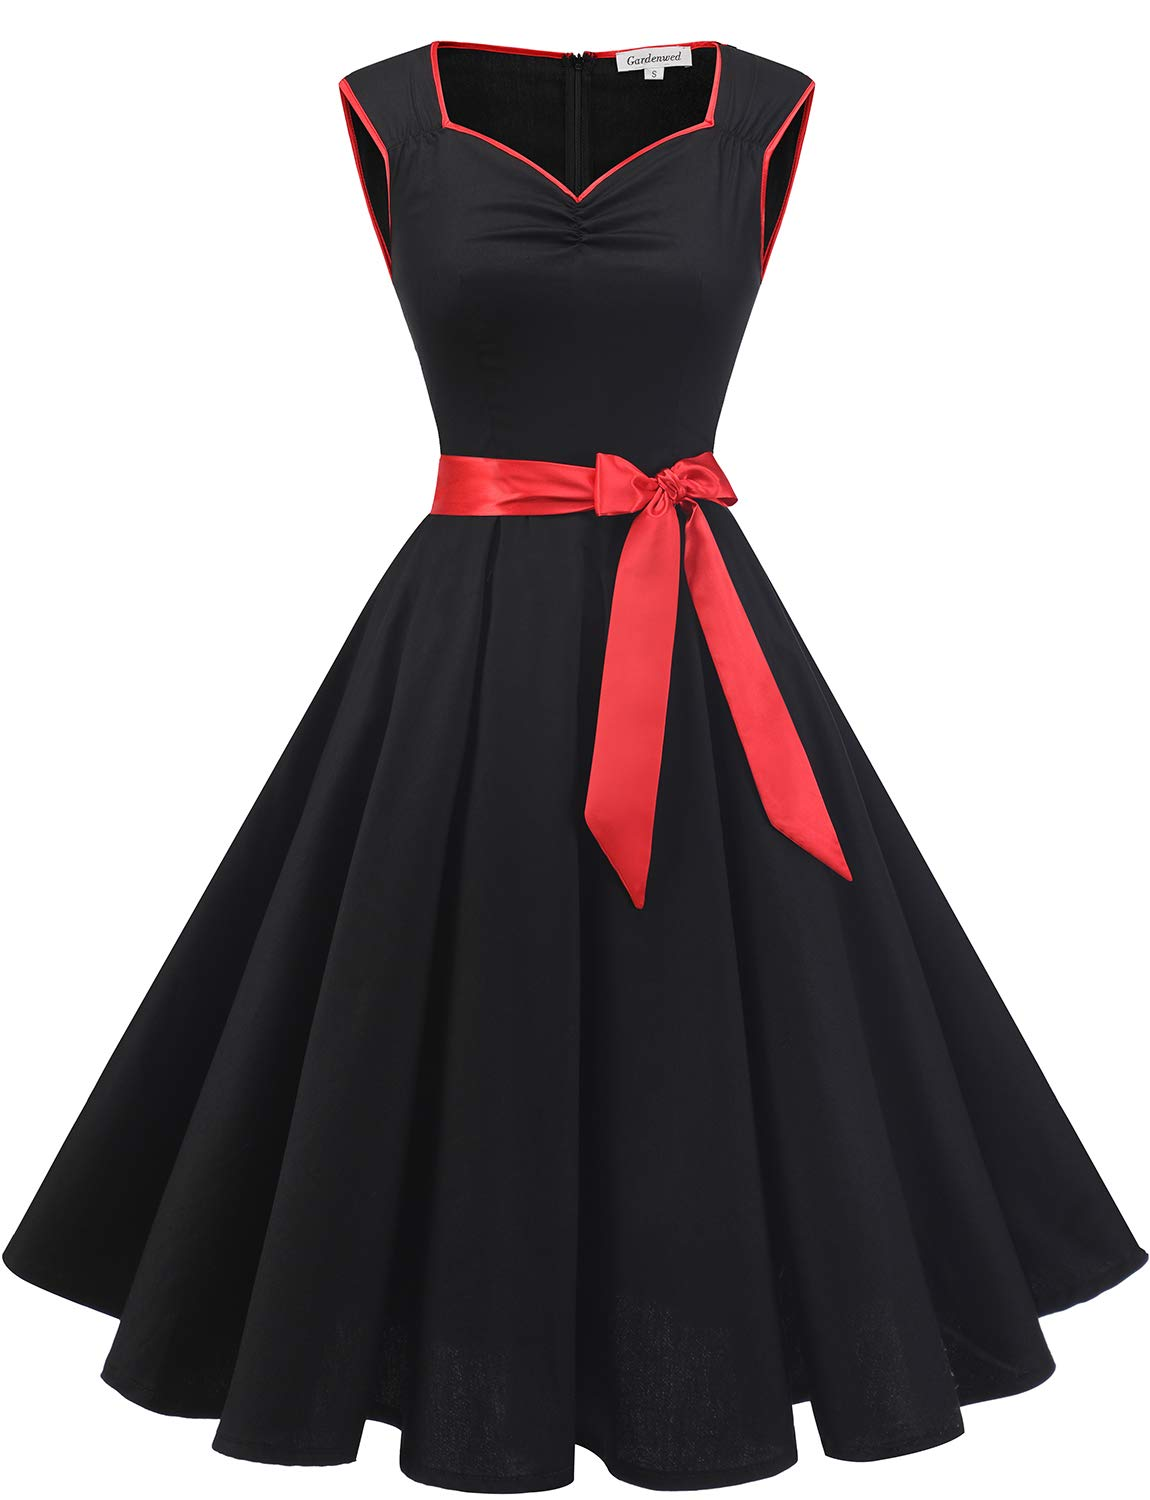 Available at Amazon: Gardenwed 1950s Vintage Dresses Cocktail Dresses for Women Retro Rockabilly Party Swing Dress